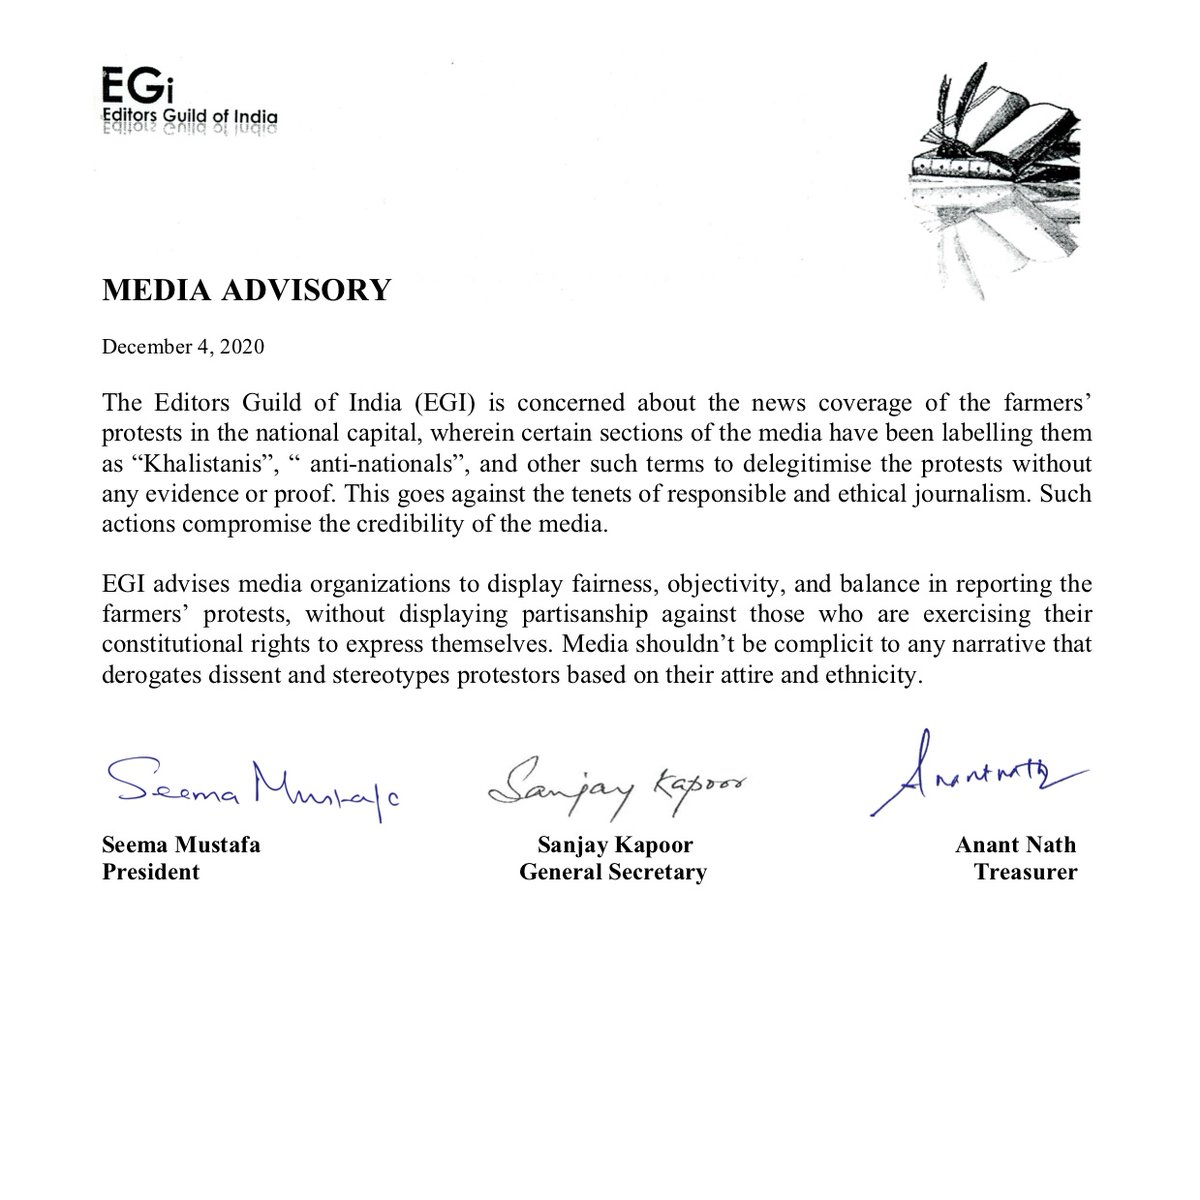 The Editors Guild of India has issued a Media Advisory on the news coverage of the ongoing farmers' protests in the national capital.